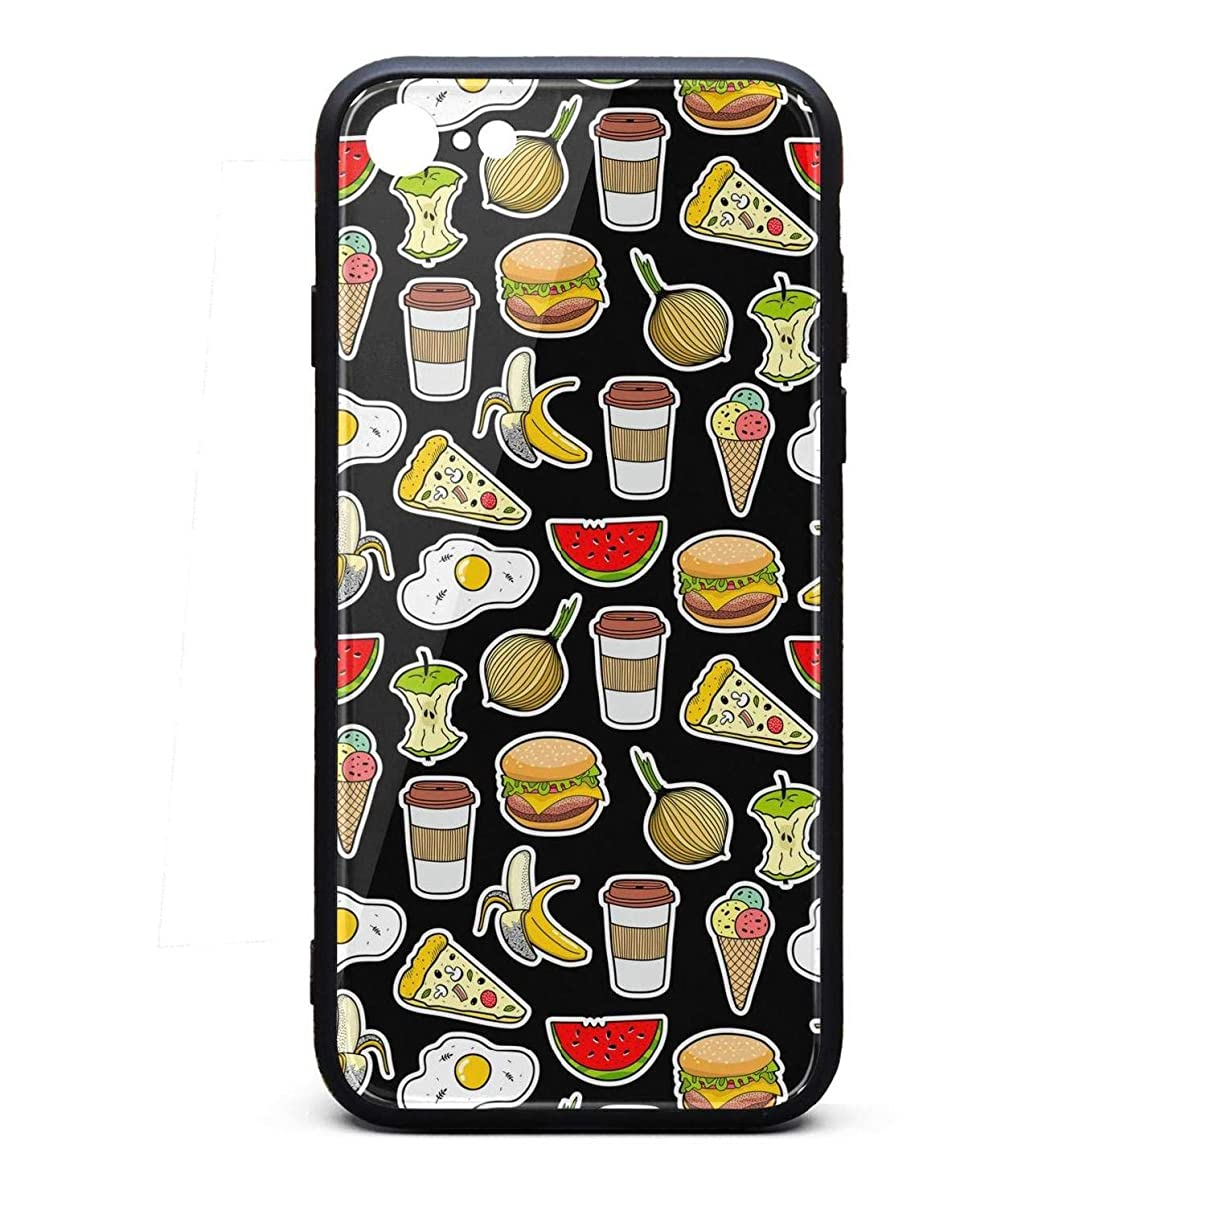 Hard iPhone 7/8 Cell Phone case Poached Egg Pizza iPhone 7 Protector Best iPhone 8 case